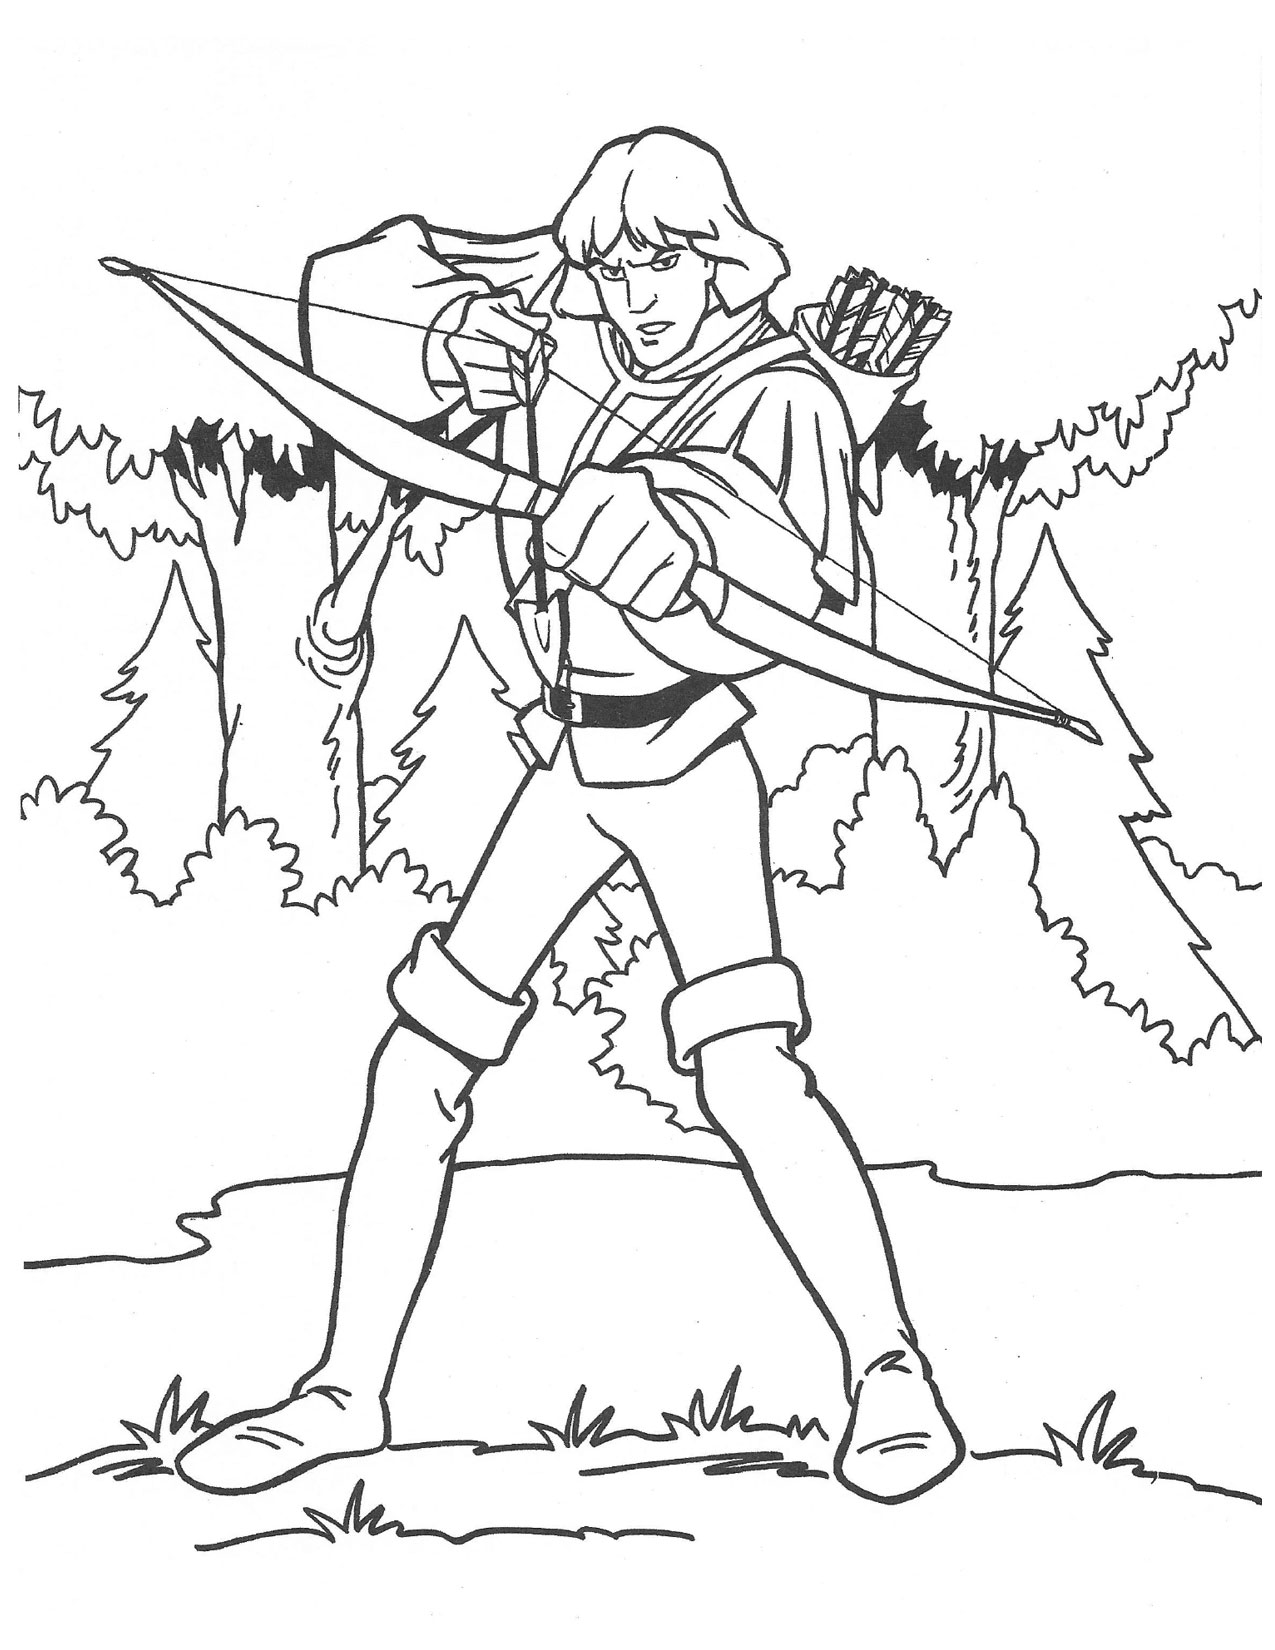 Swan Princess 25th Anniversary Coloring Pages Create Play Travel